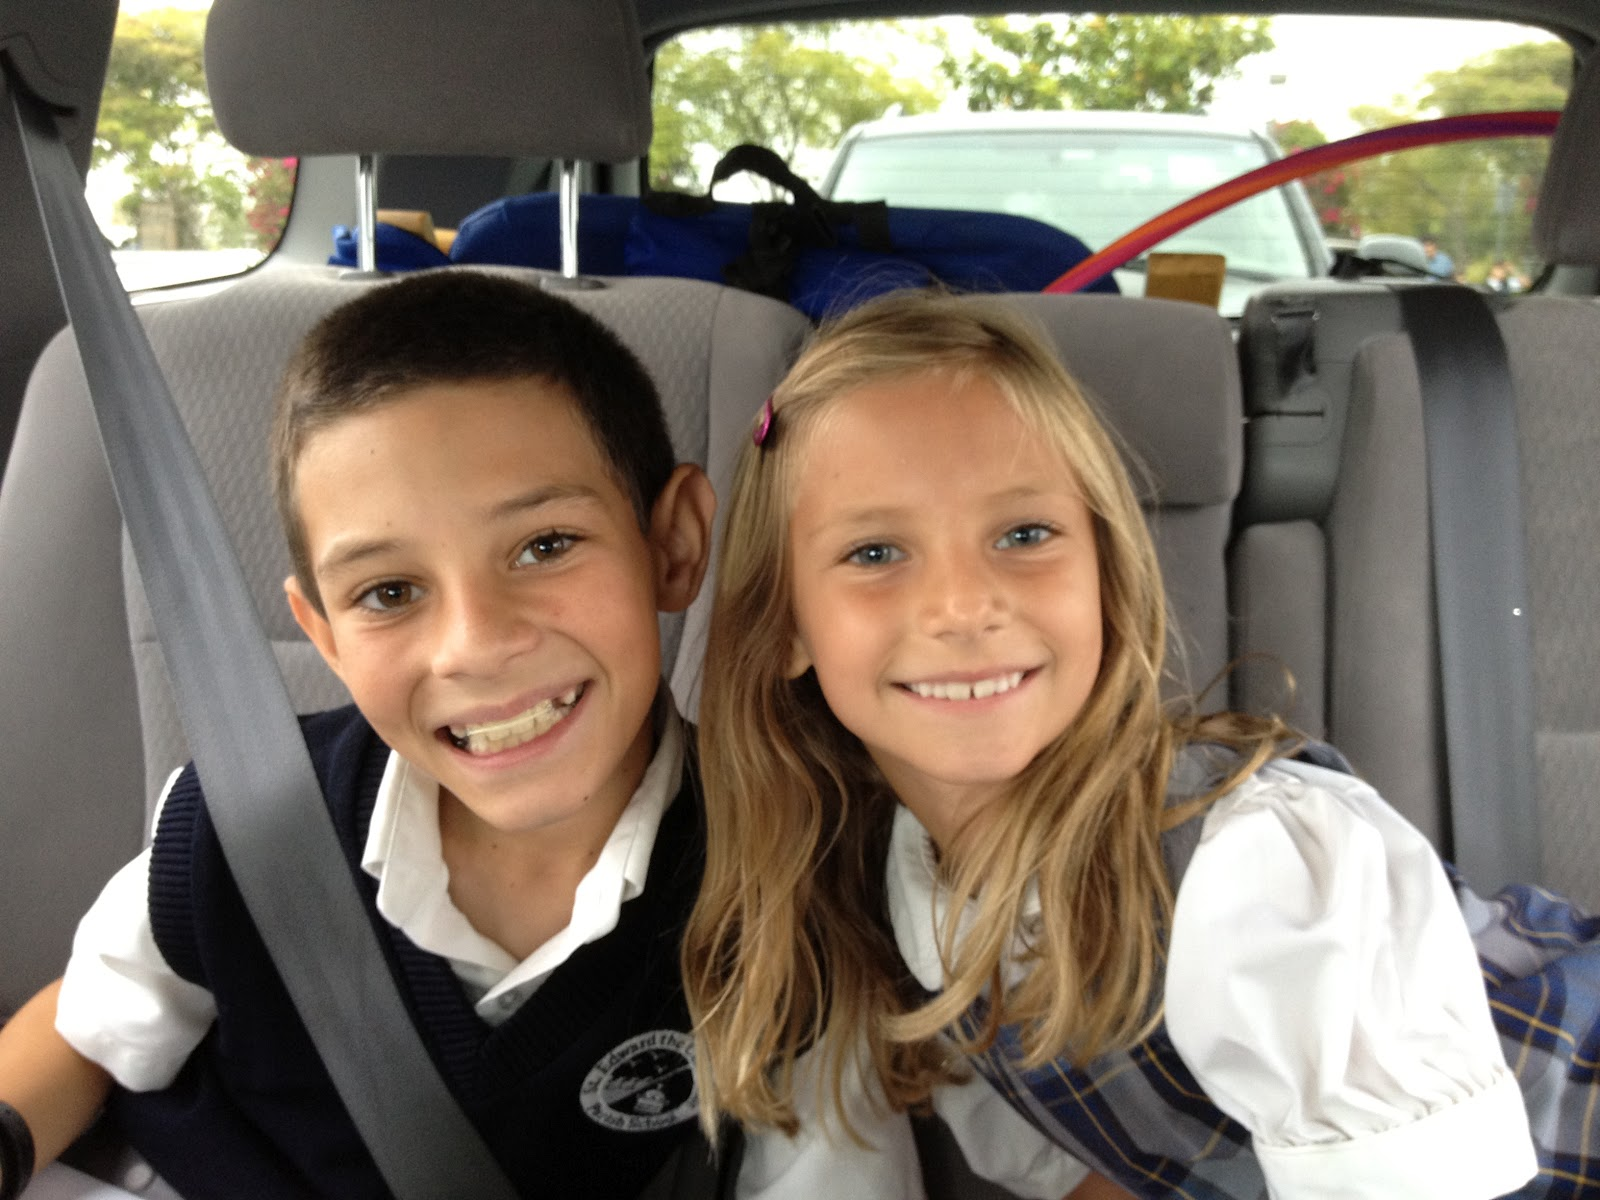 My 5th grader is dating